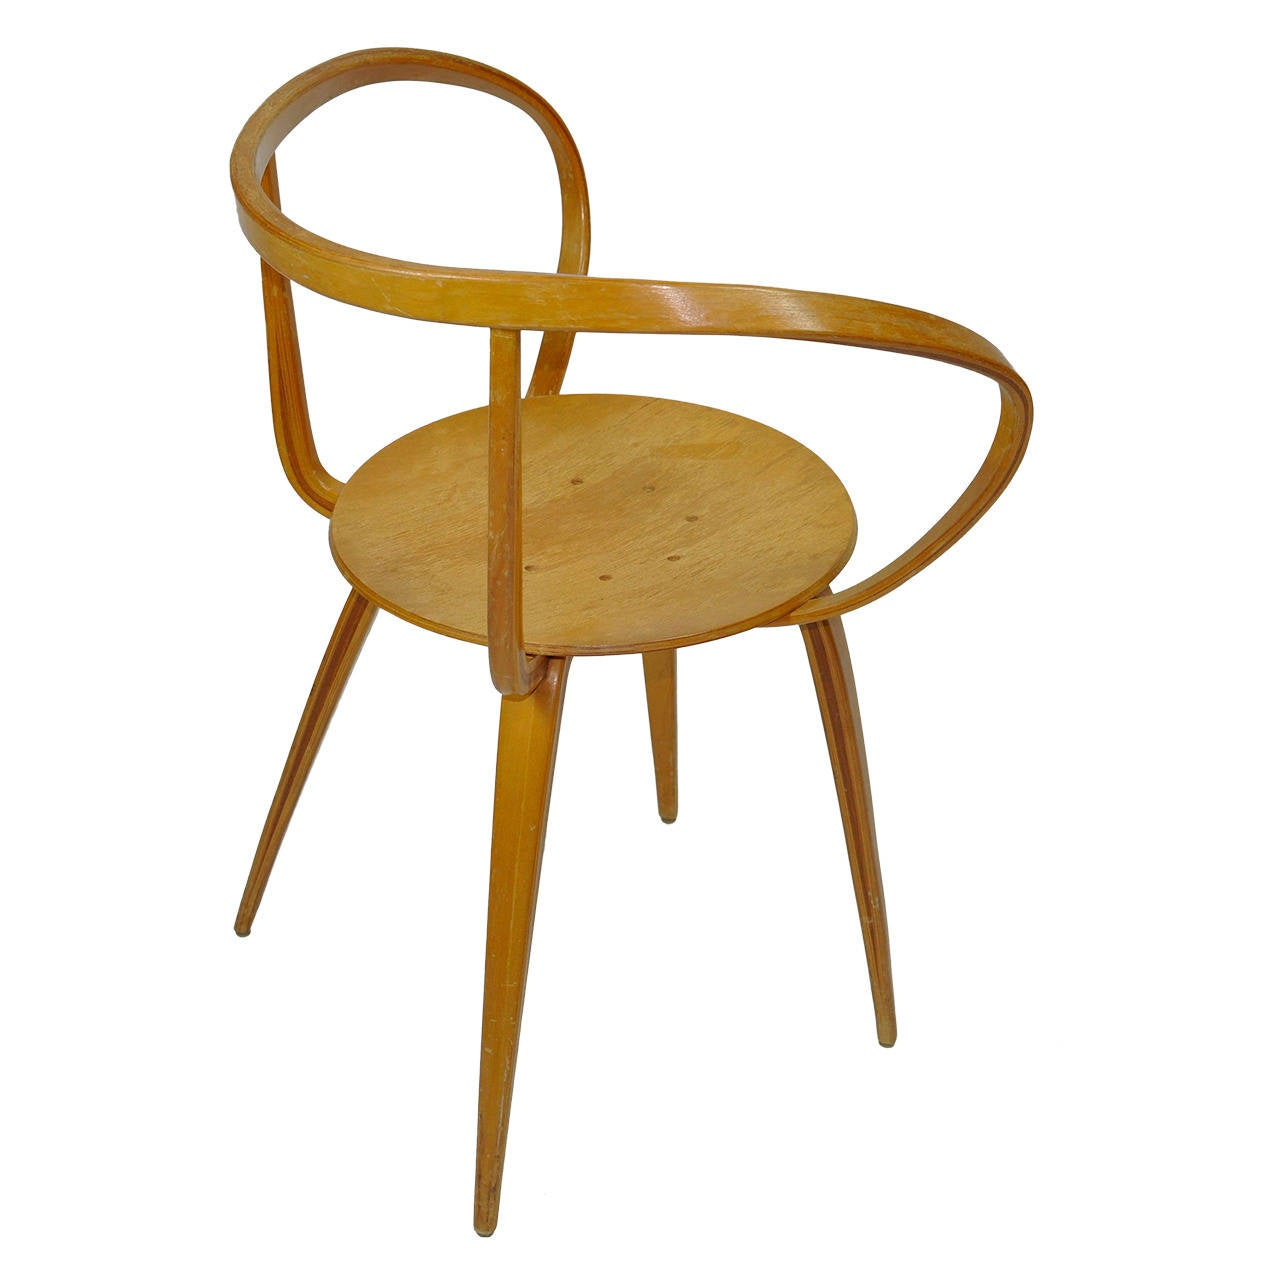 Pretzel Chair George Nelson Pretzel Chair At 1stdibs